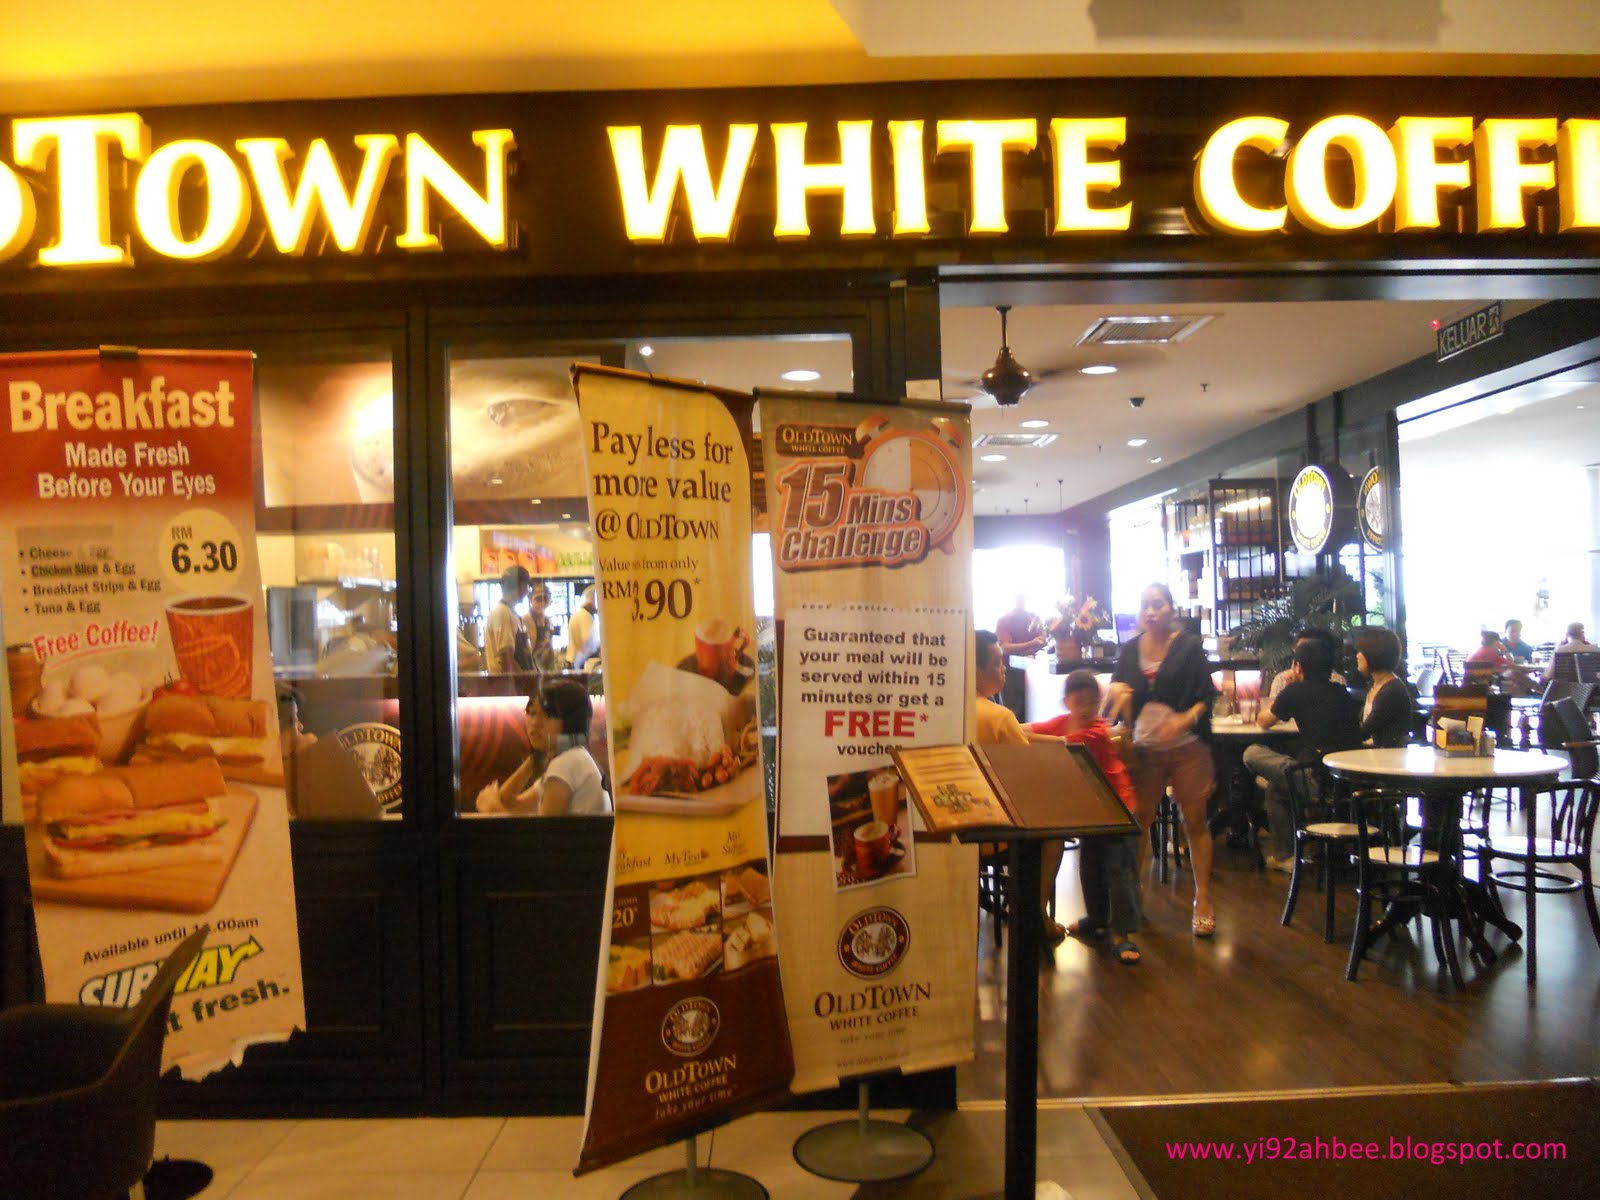 Old town white coffee mission